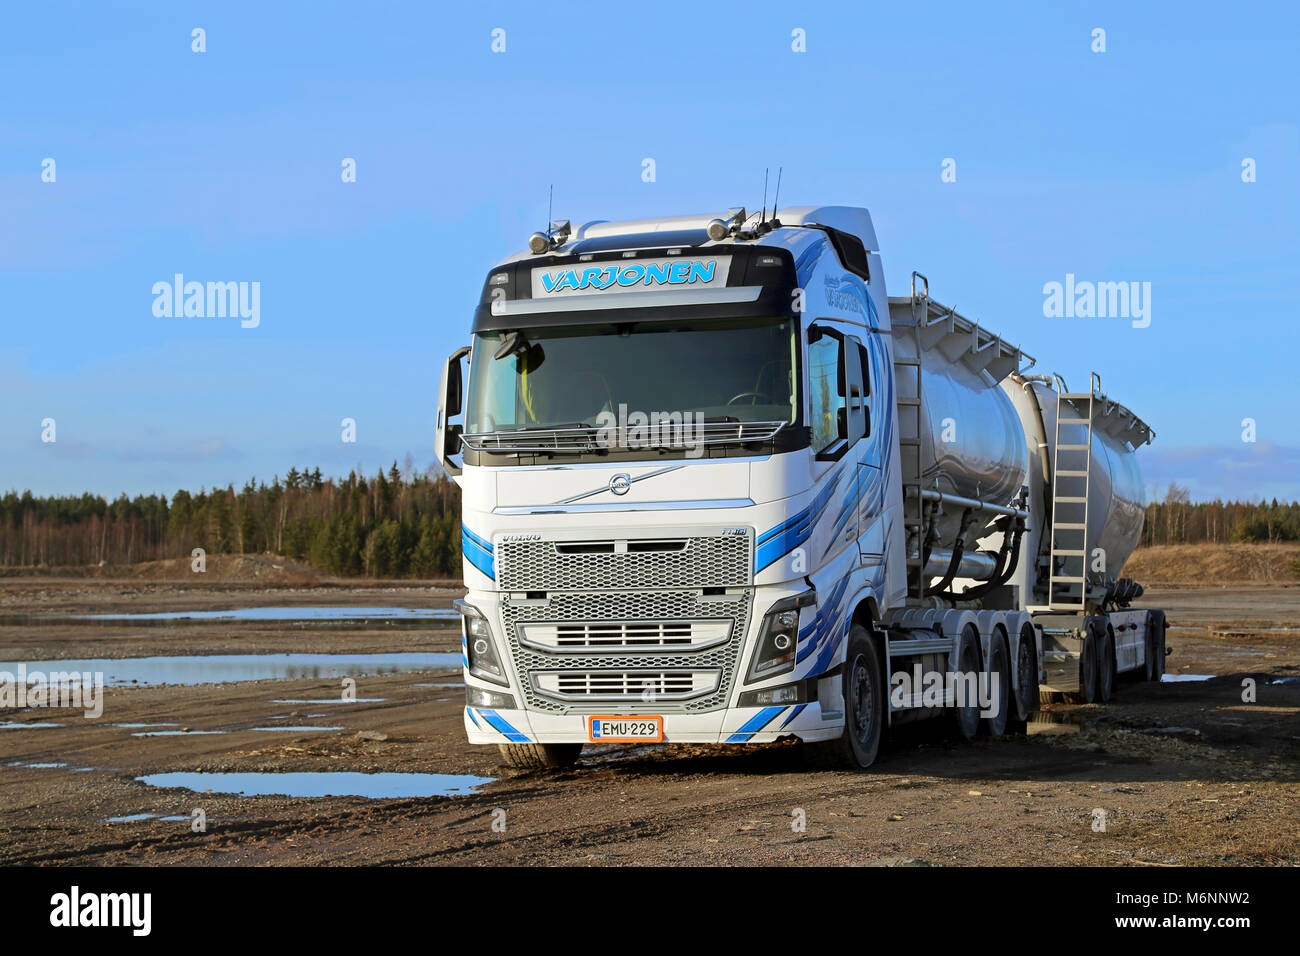 LIETO, FINLAND - MARCH 22, 2014: White Volvo FH tanker truck in dramatic landscape. The first Euro 6 versions of - Stock Image